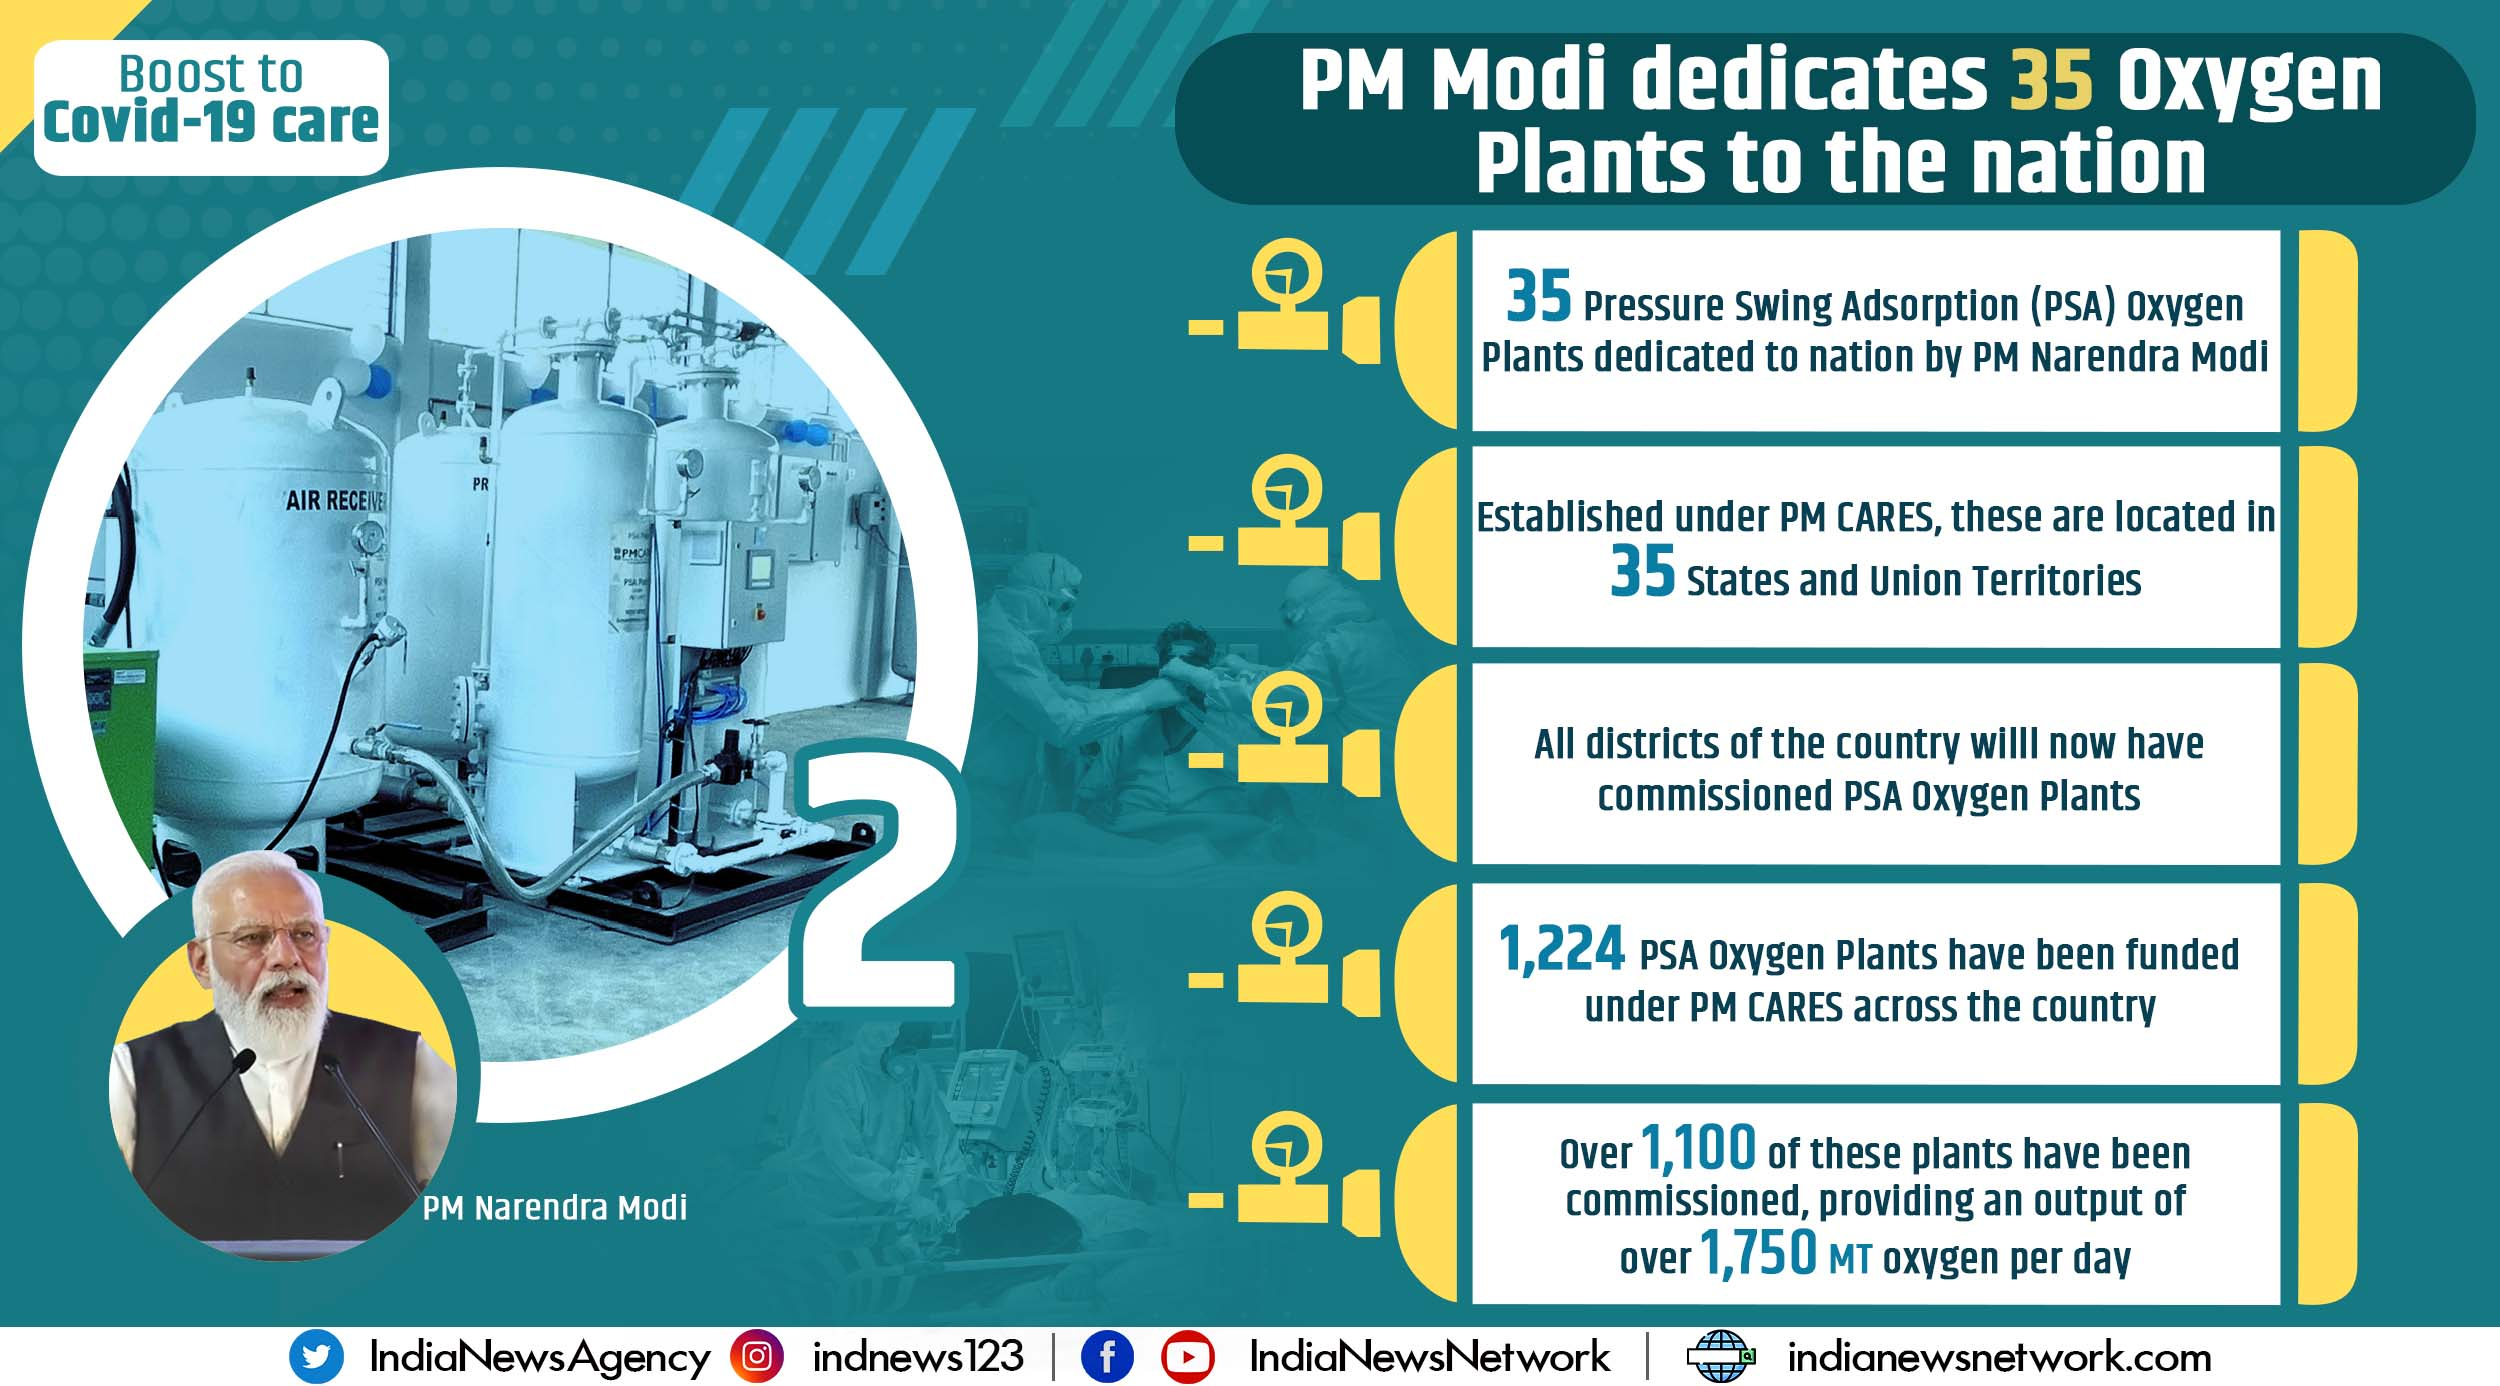 Boost to Covid-19 care as PM Modi dedicates 35 oxygen plants to nation